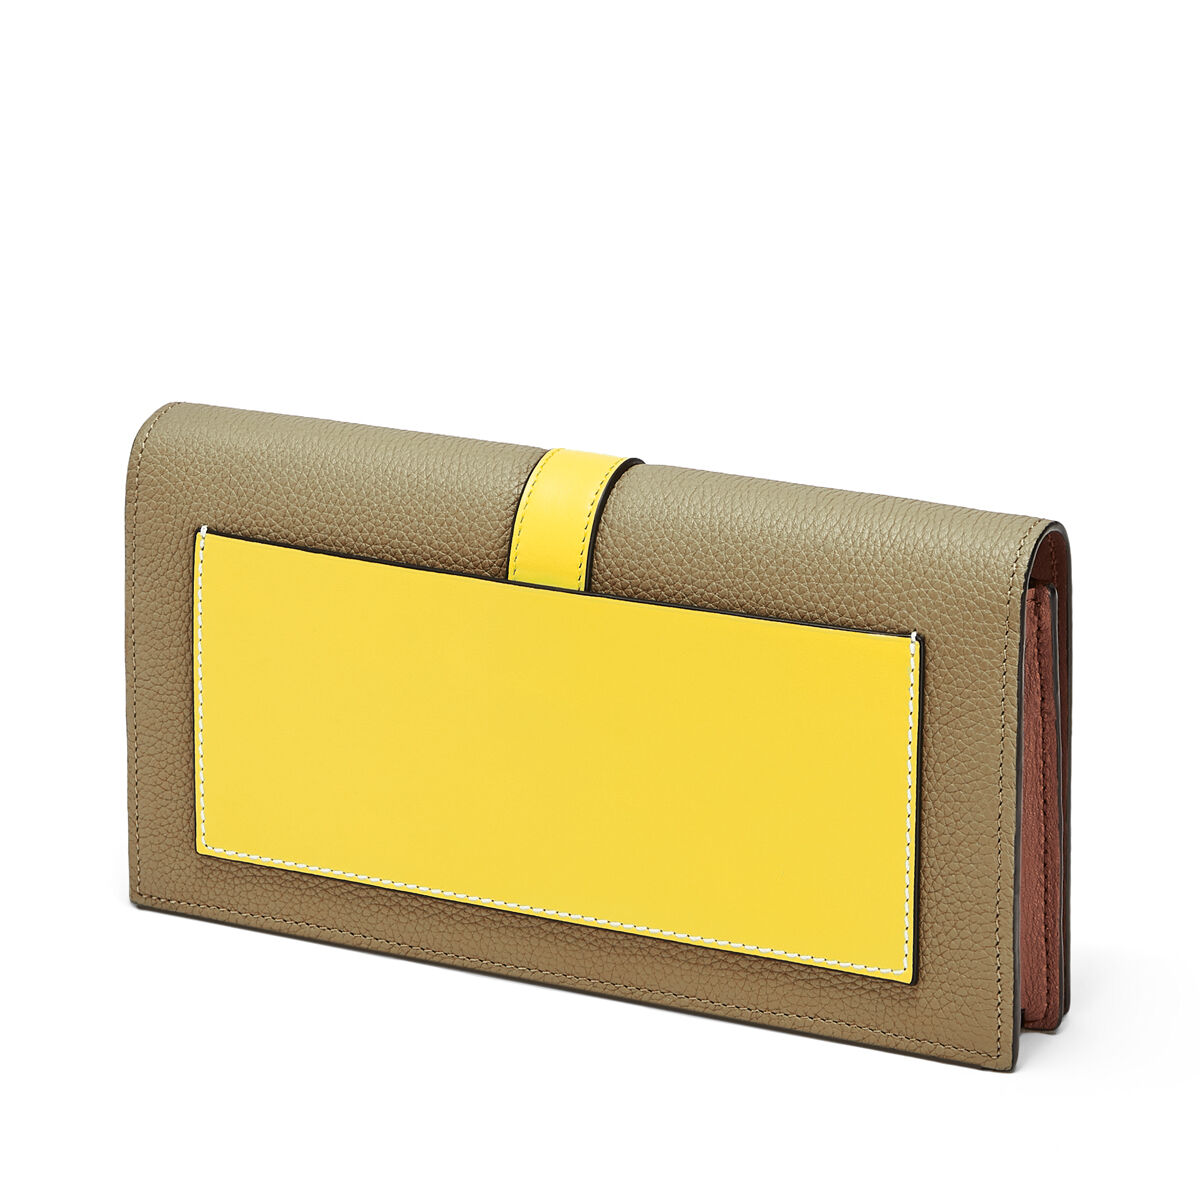 LOEWE ウォレットWITHチェーン リーフ/イエロー all